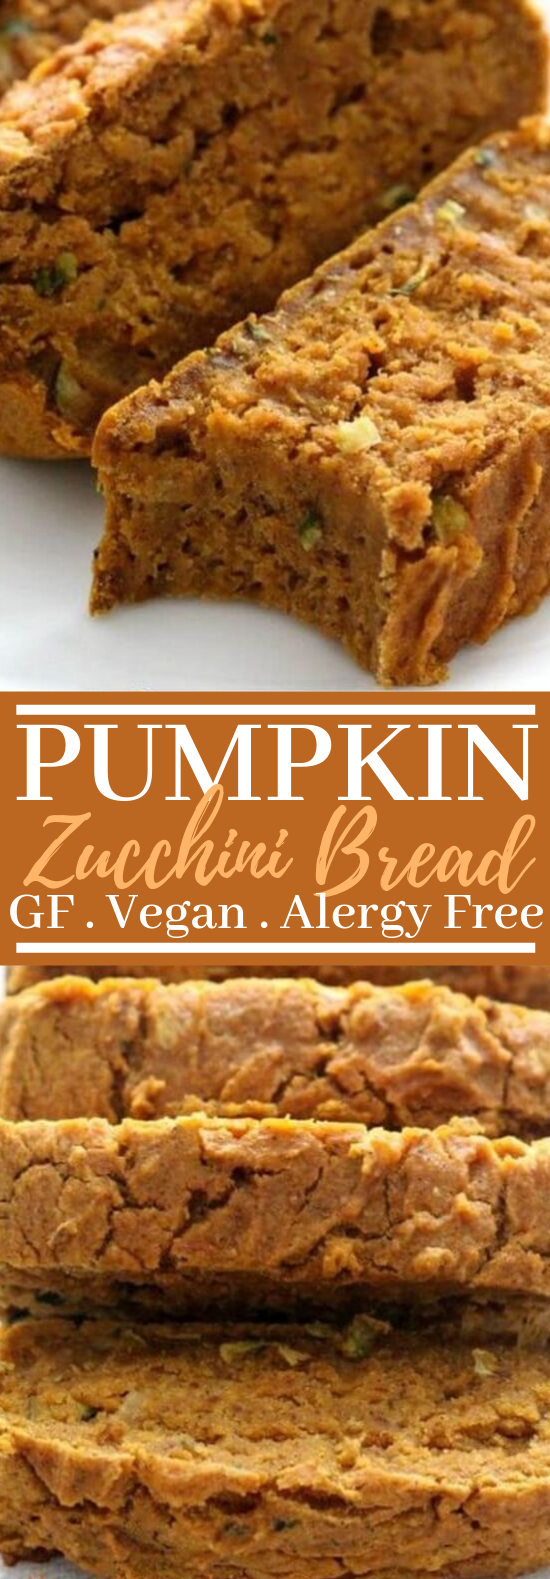 Gluten-Free Pumpkin Zucchini Bread (Vegan, Allergy-Free) #vegan #breakfast